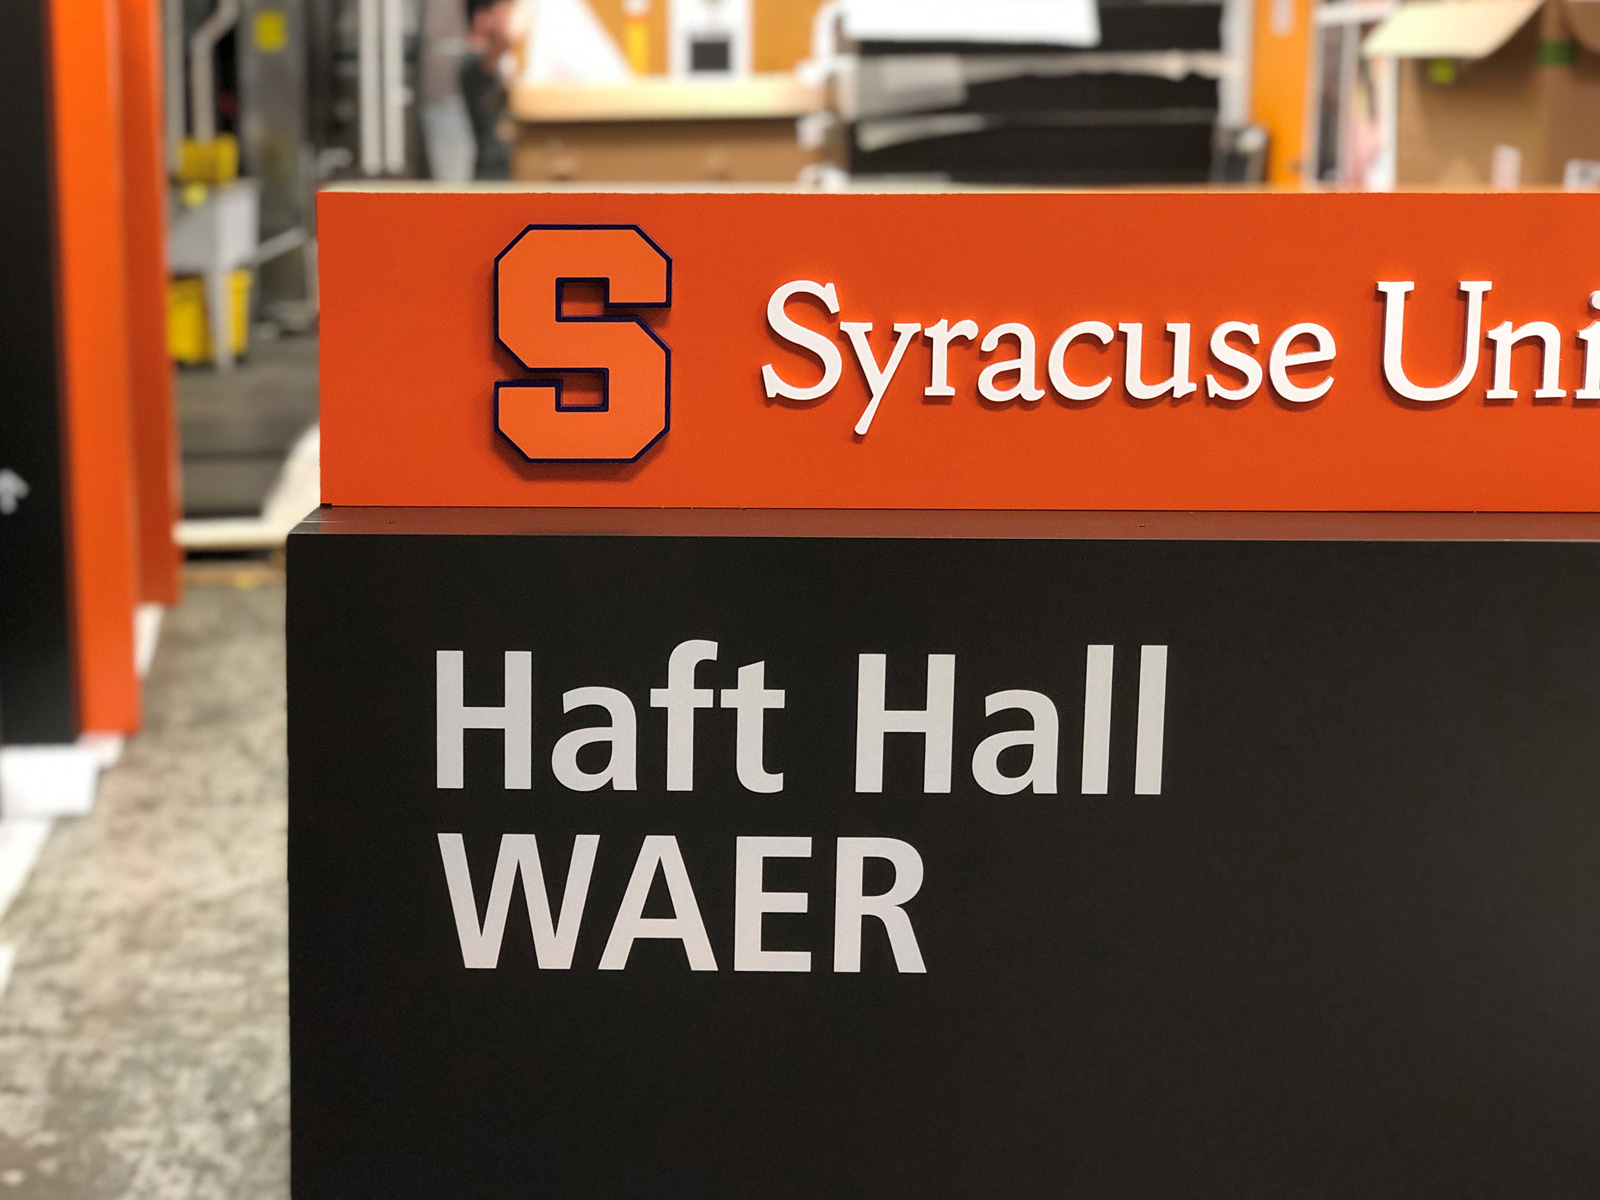 Design Facilitation of Syracuse University Wayfinding